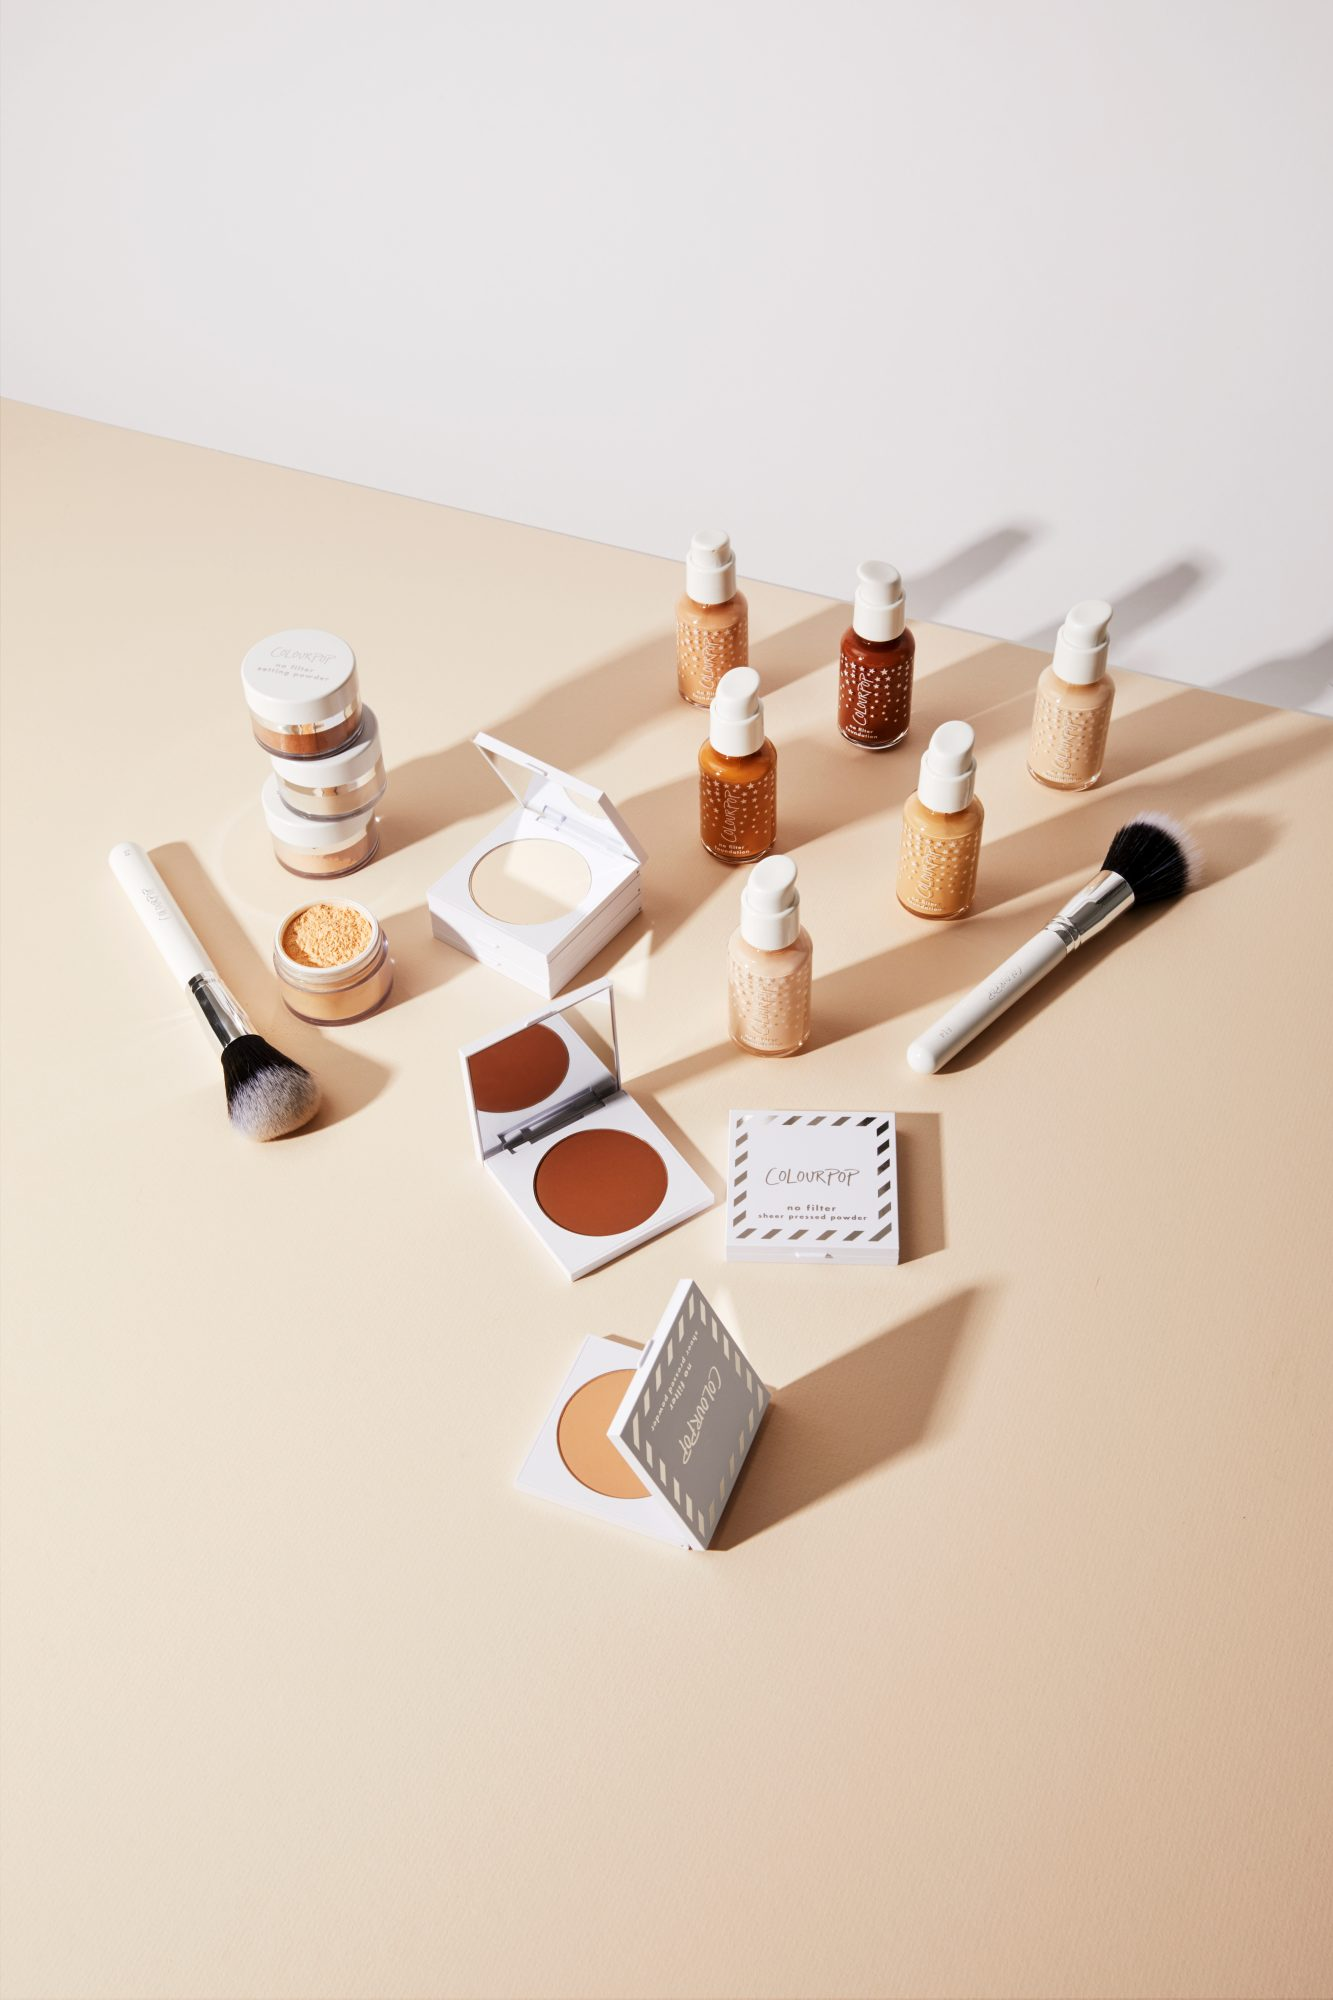 ColourPop-Complexion-Collection-products.jpg